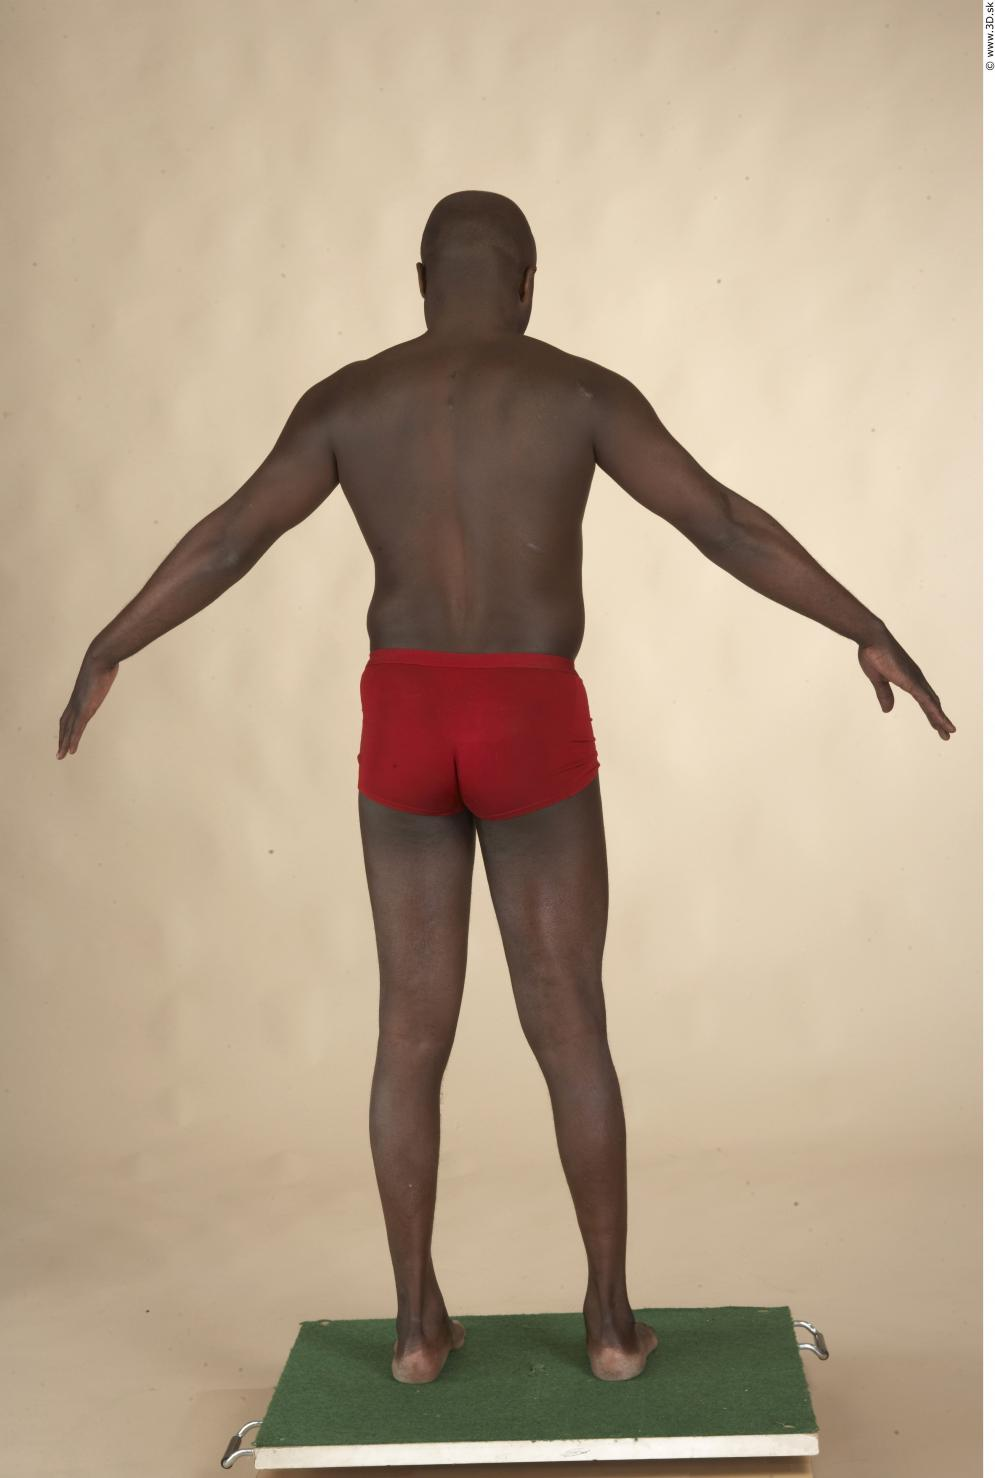 Image from Jack - Afroamerican male photo references from 3D.sk - 147433jack_0071.jpg